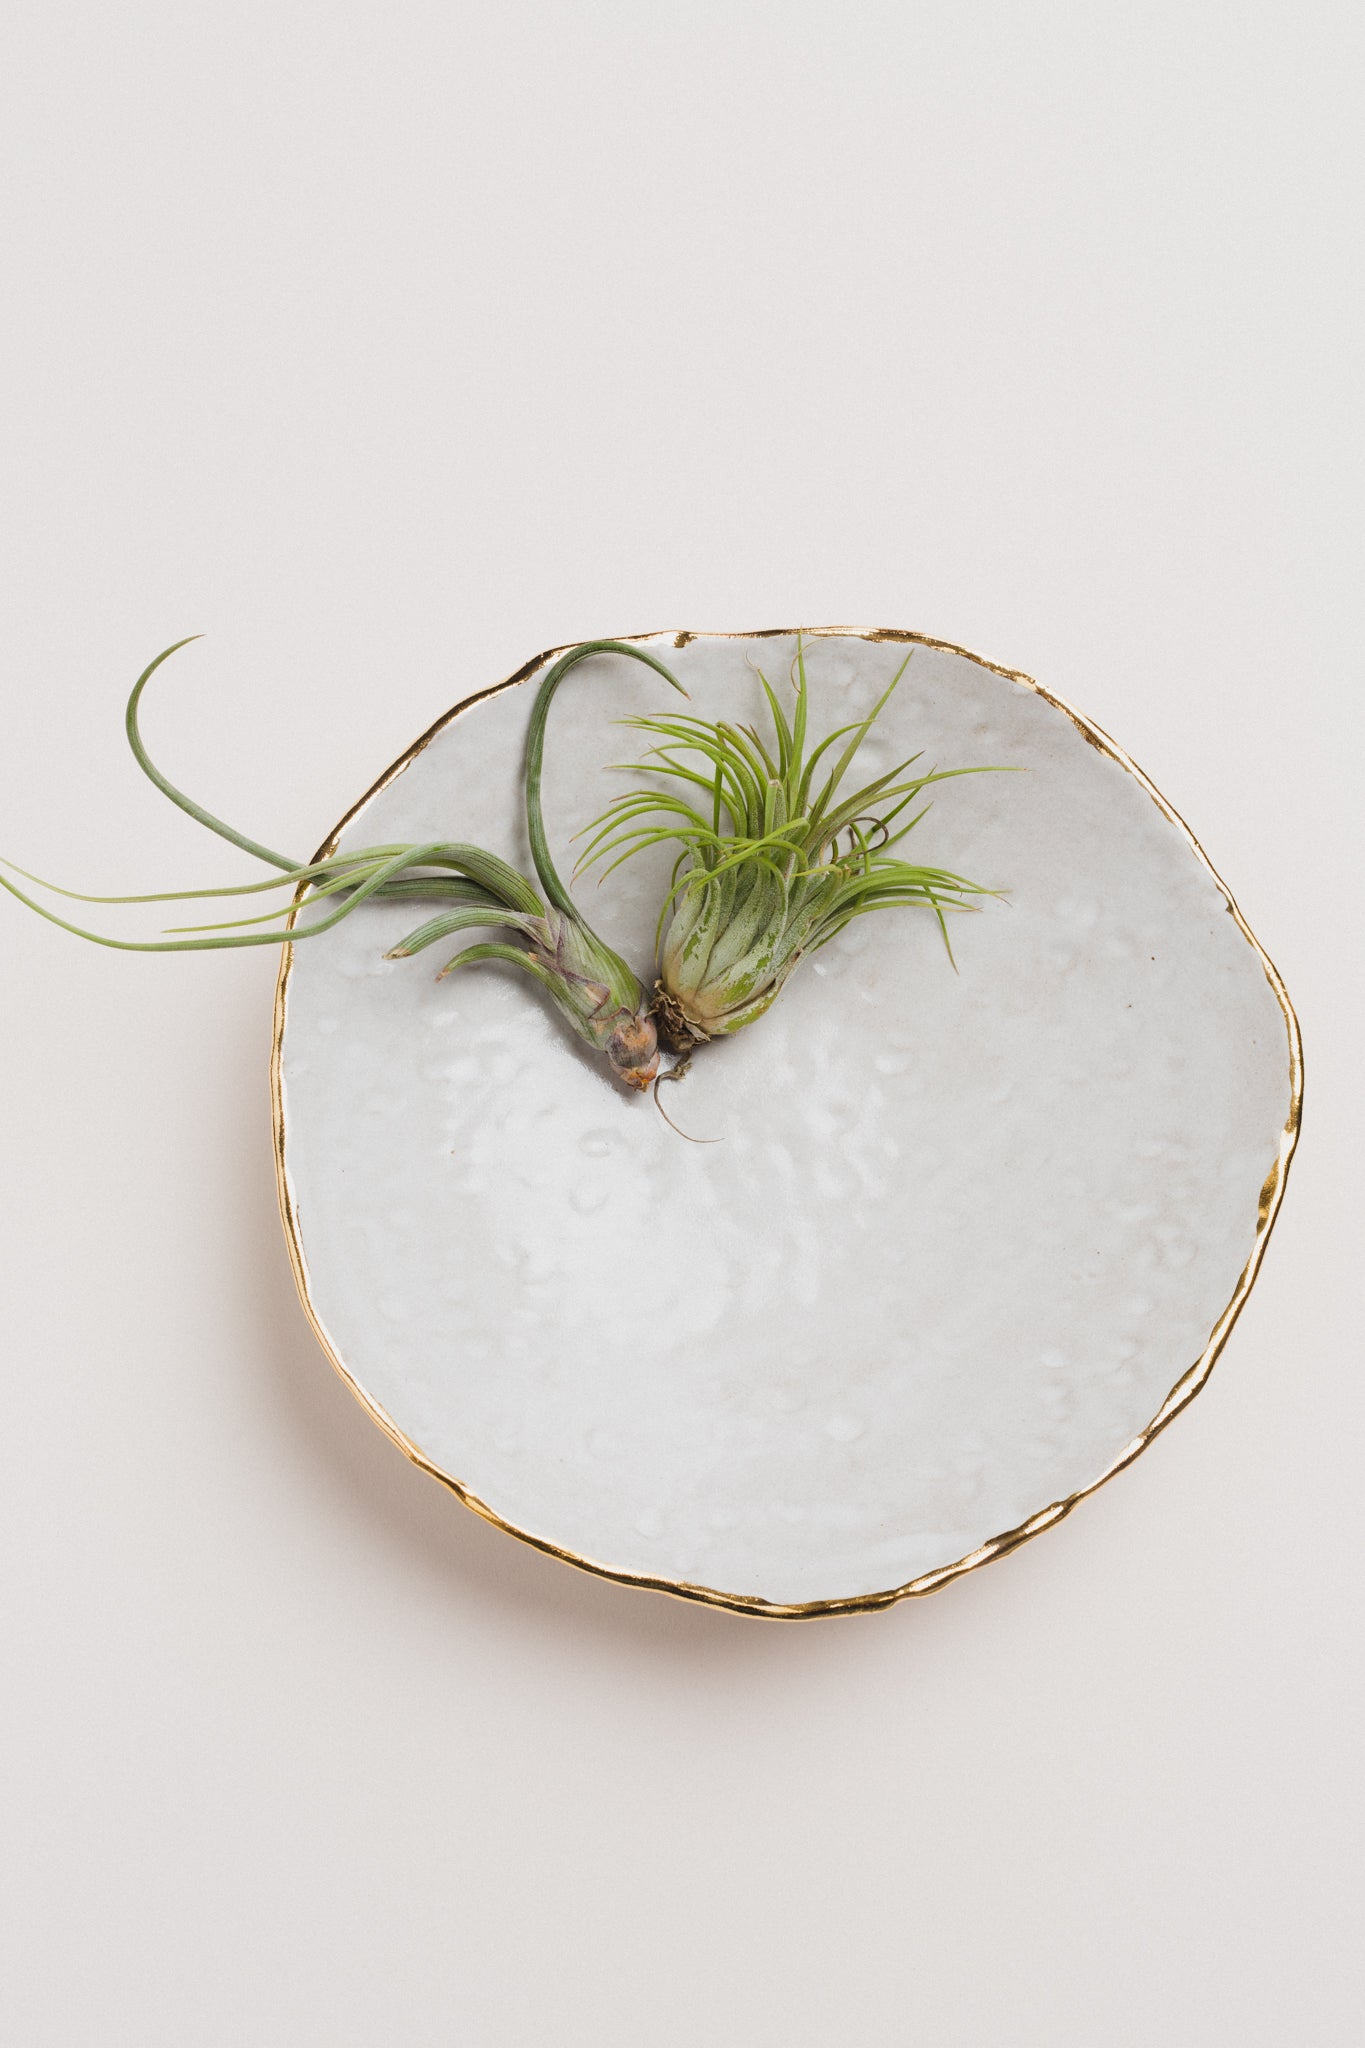 Irregular Circle Platter Decor The Object Enthusiast - Hello Holiday